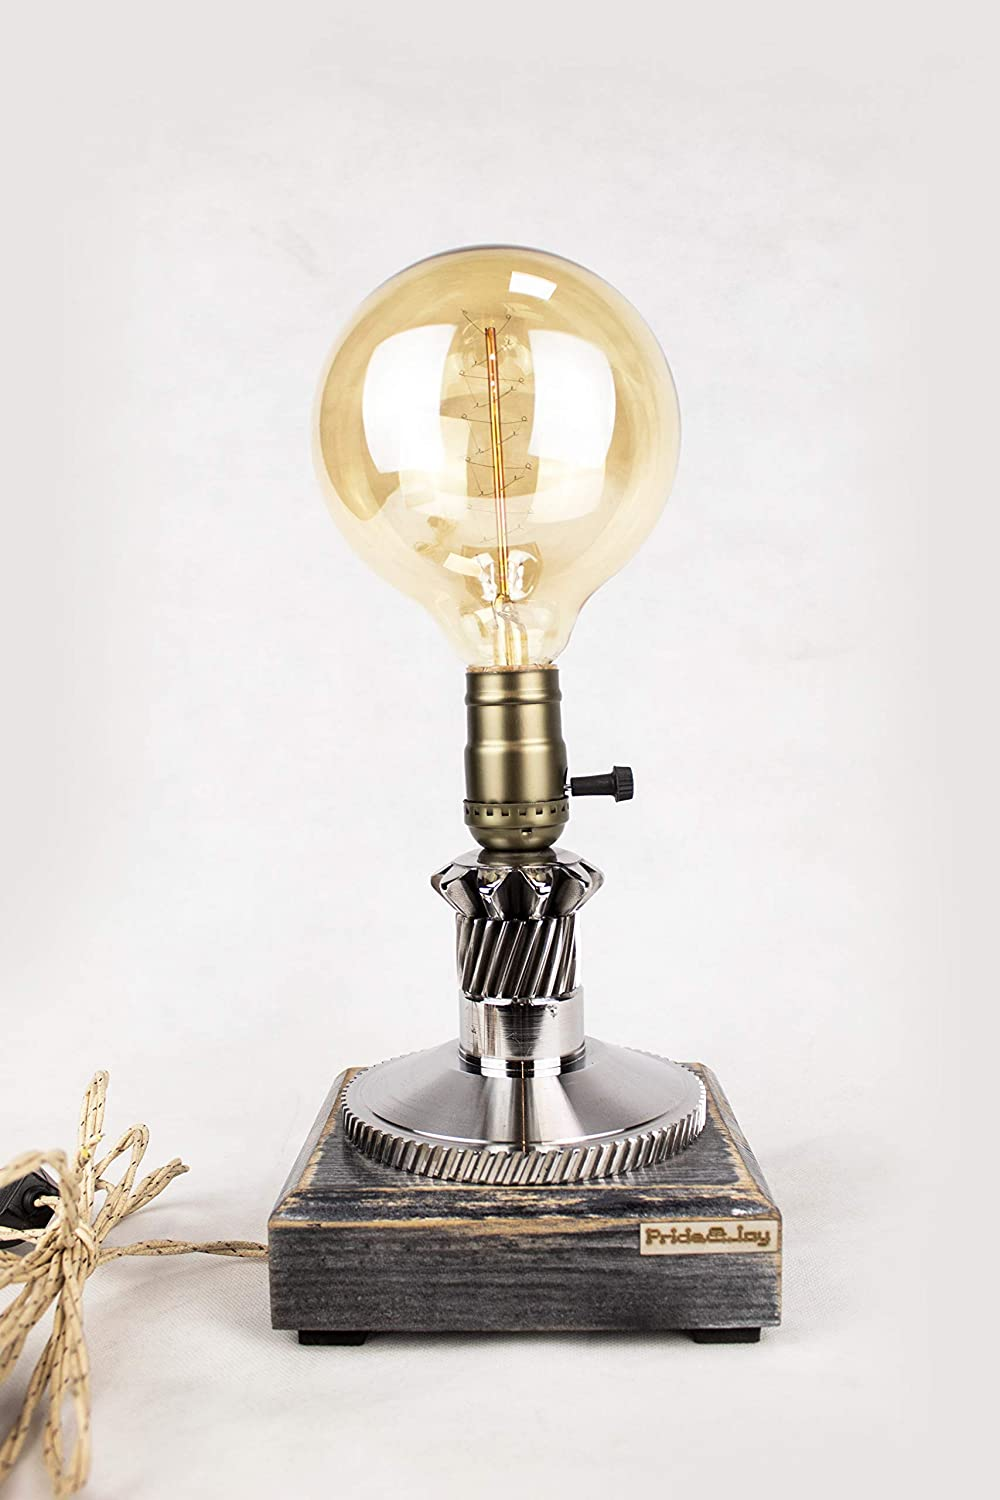 Industrial Table Lamp Max 89% OFF PrideJoy steampunk Rare lamp part Gift car for